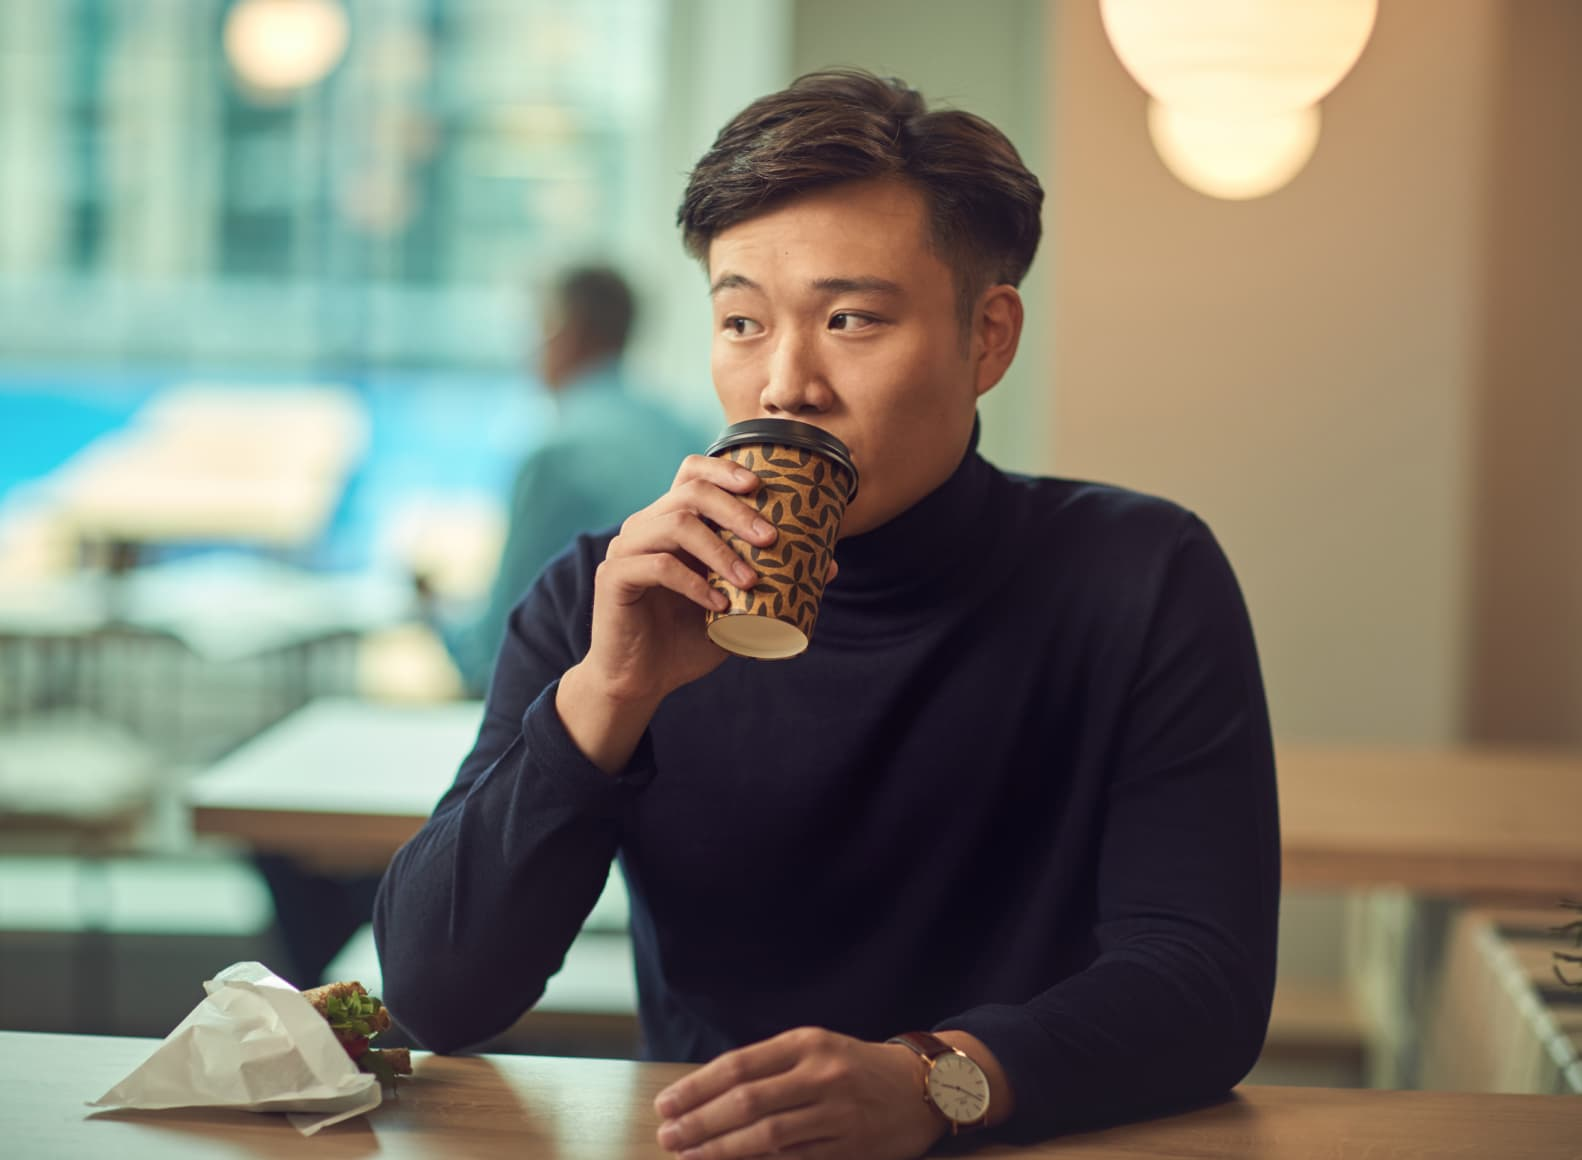 Person drinking coffee